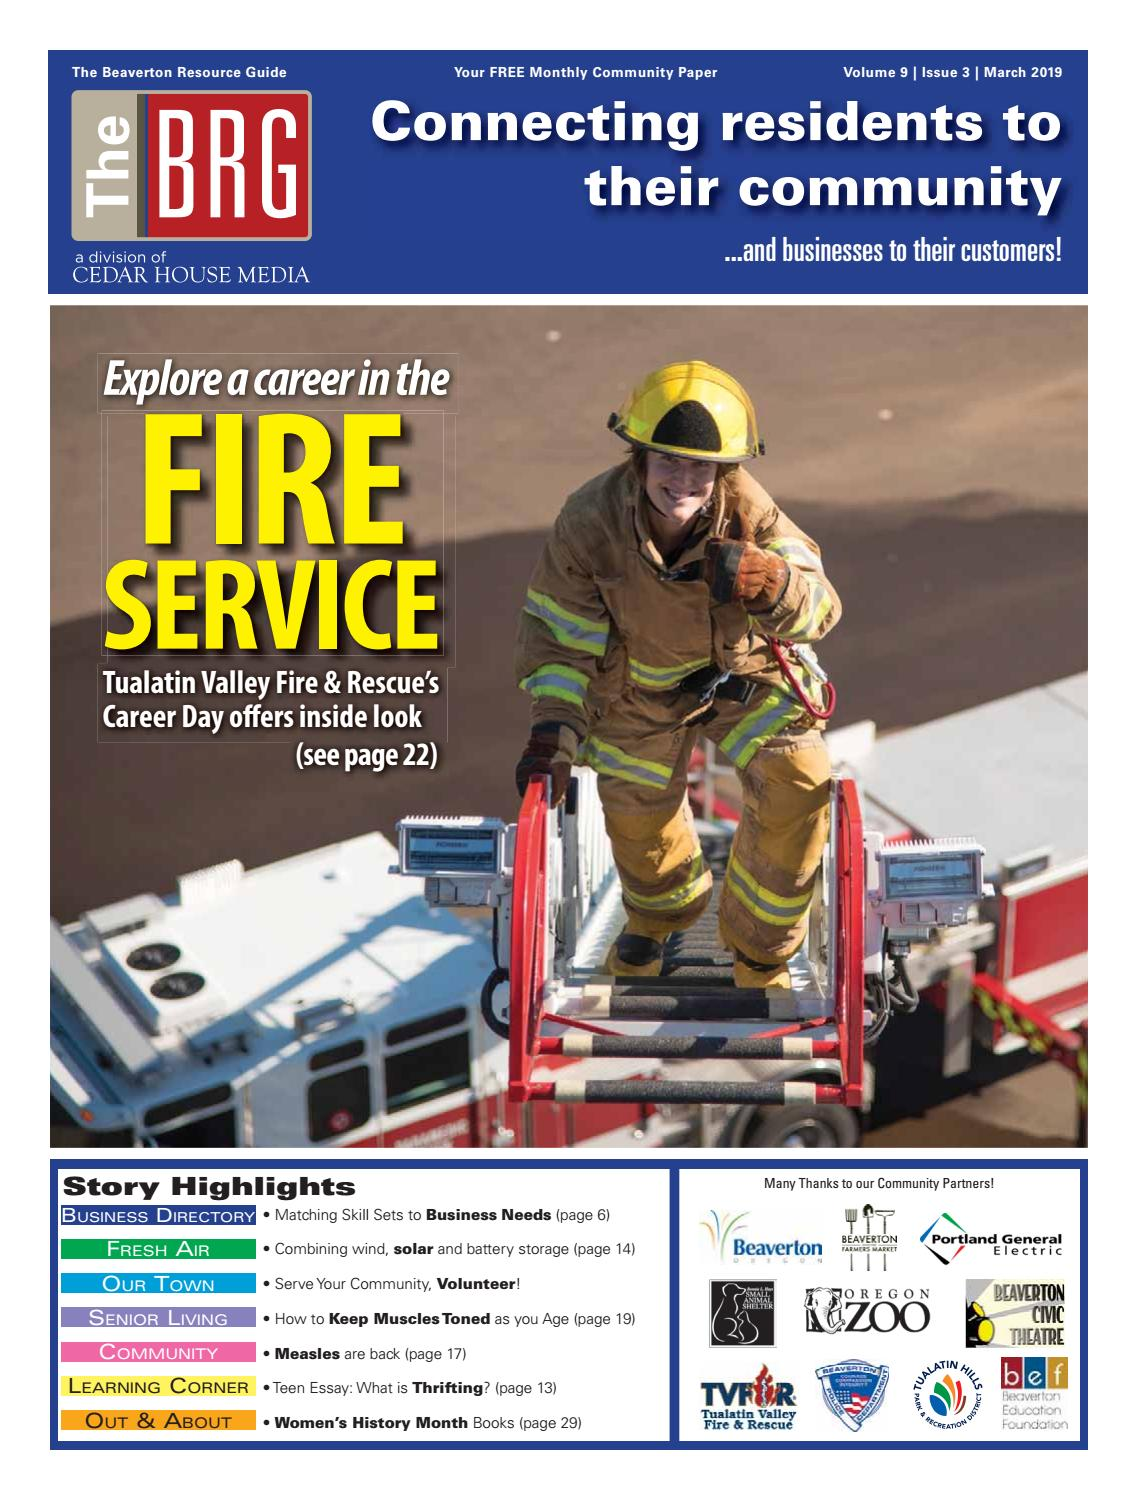 Brgmarch2019 By Beaverton Resource Guide Issuu